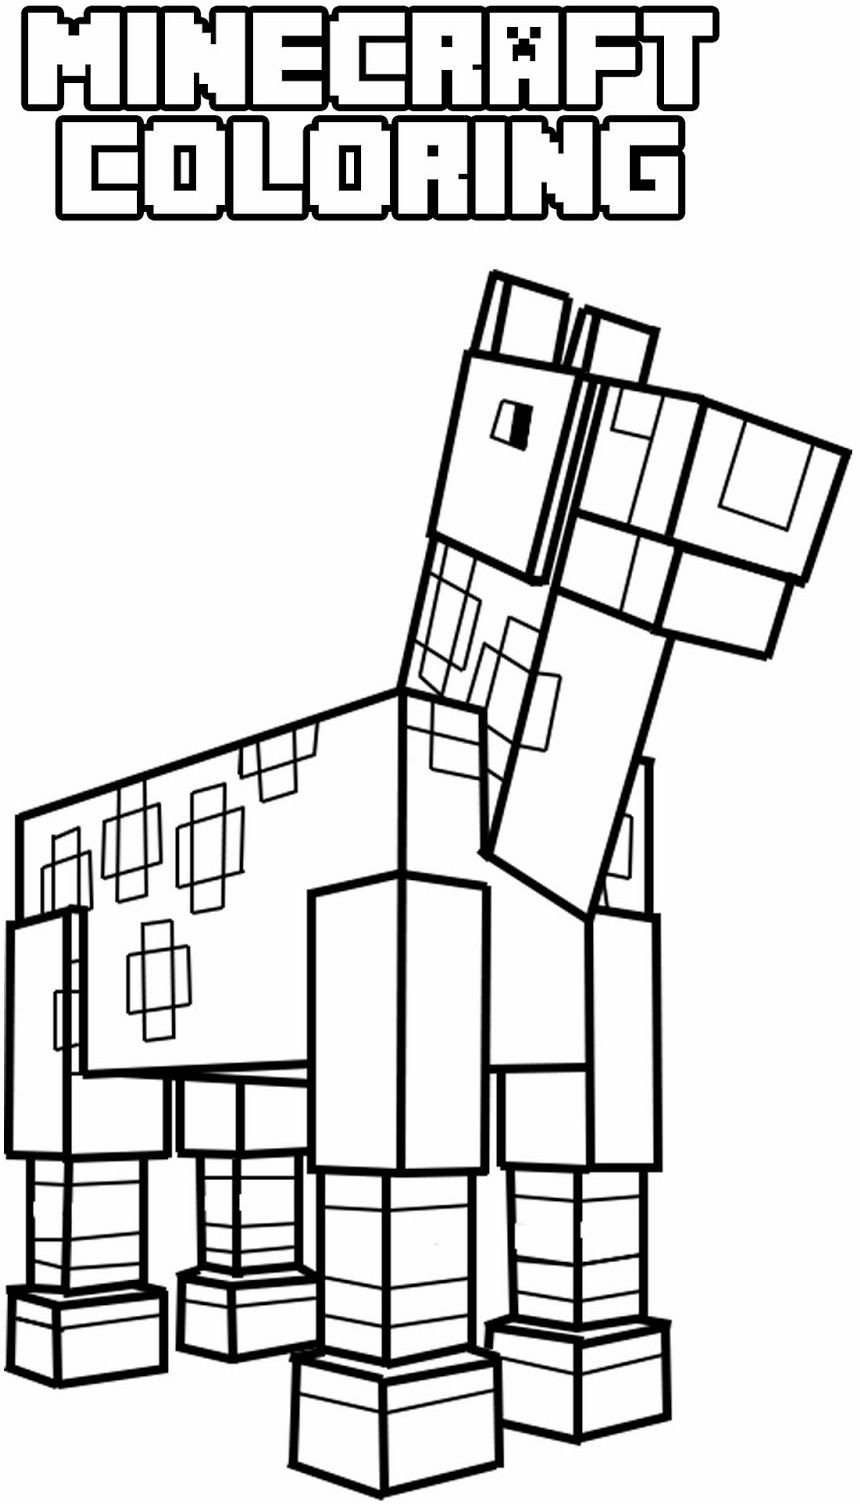 Minecraft Horse | Coloring pages for children at the library ...